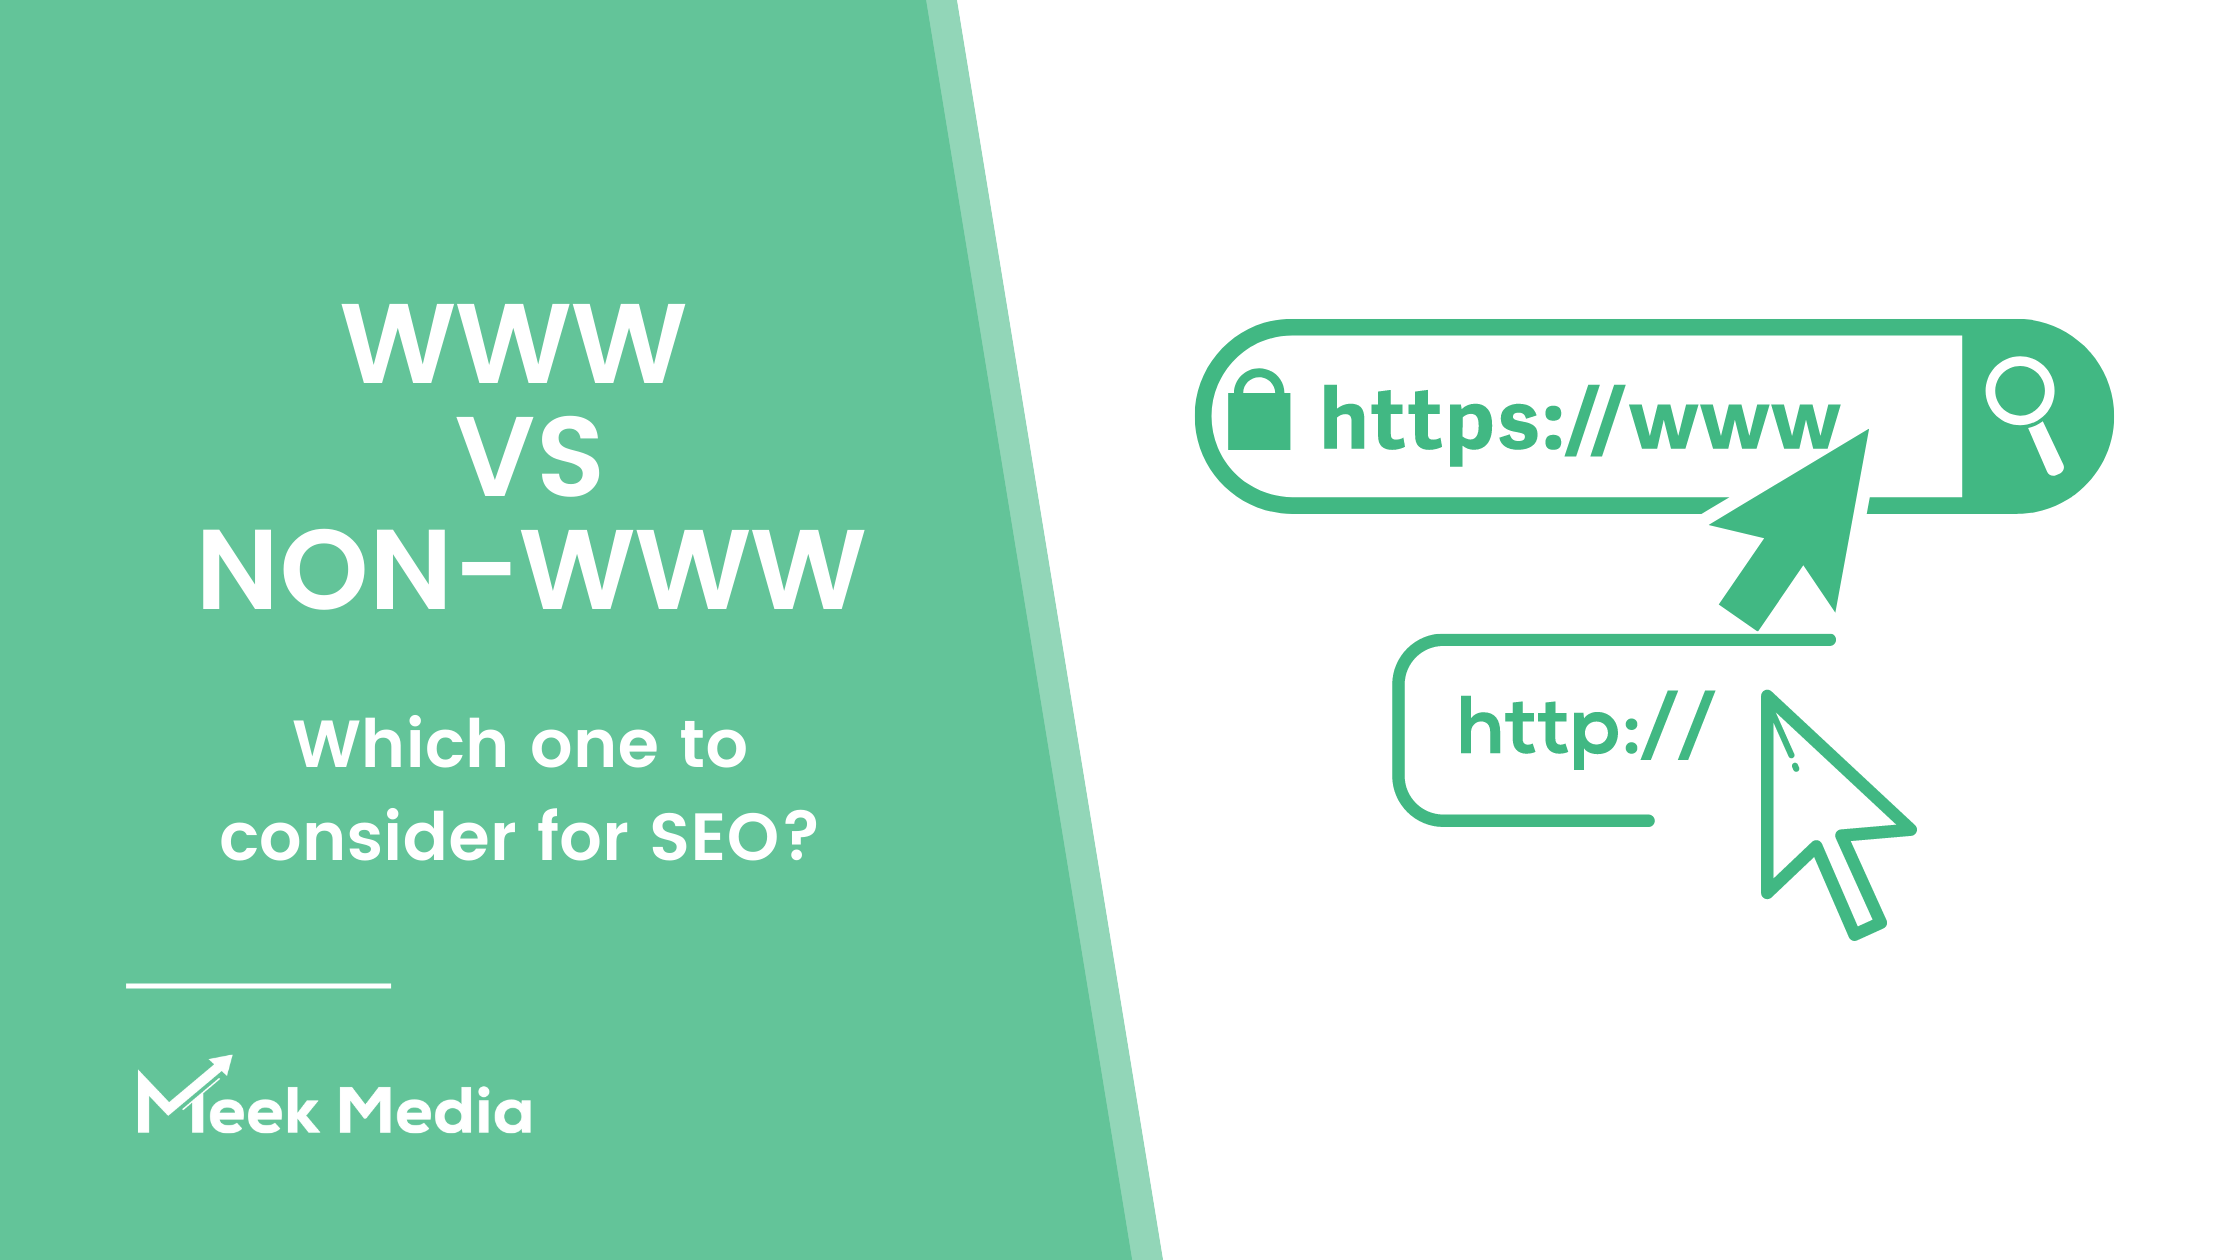 WWW Vs Non-WWW – Which one to consider for SEO?